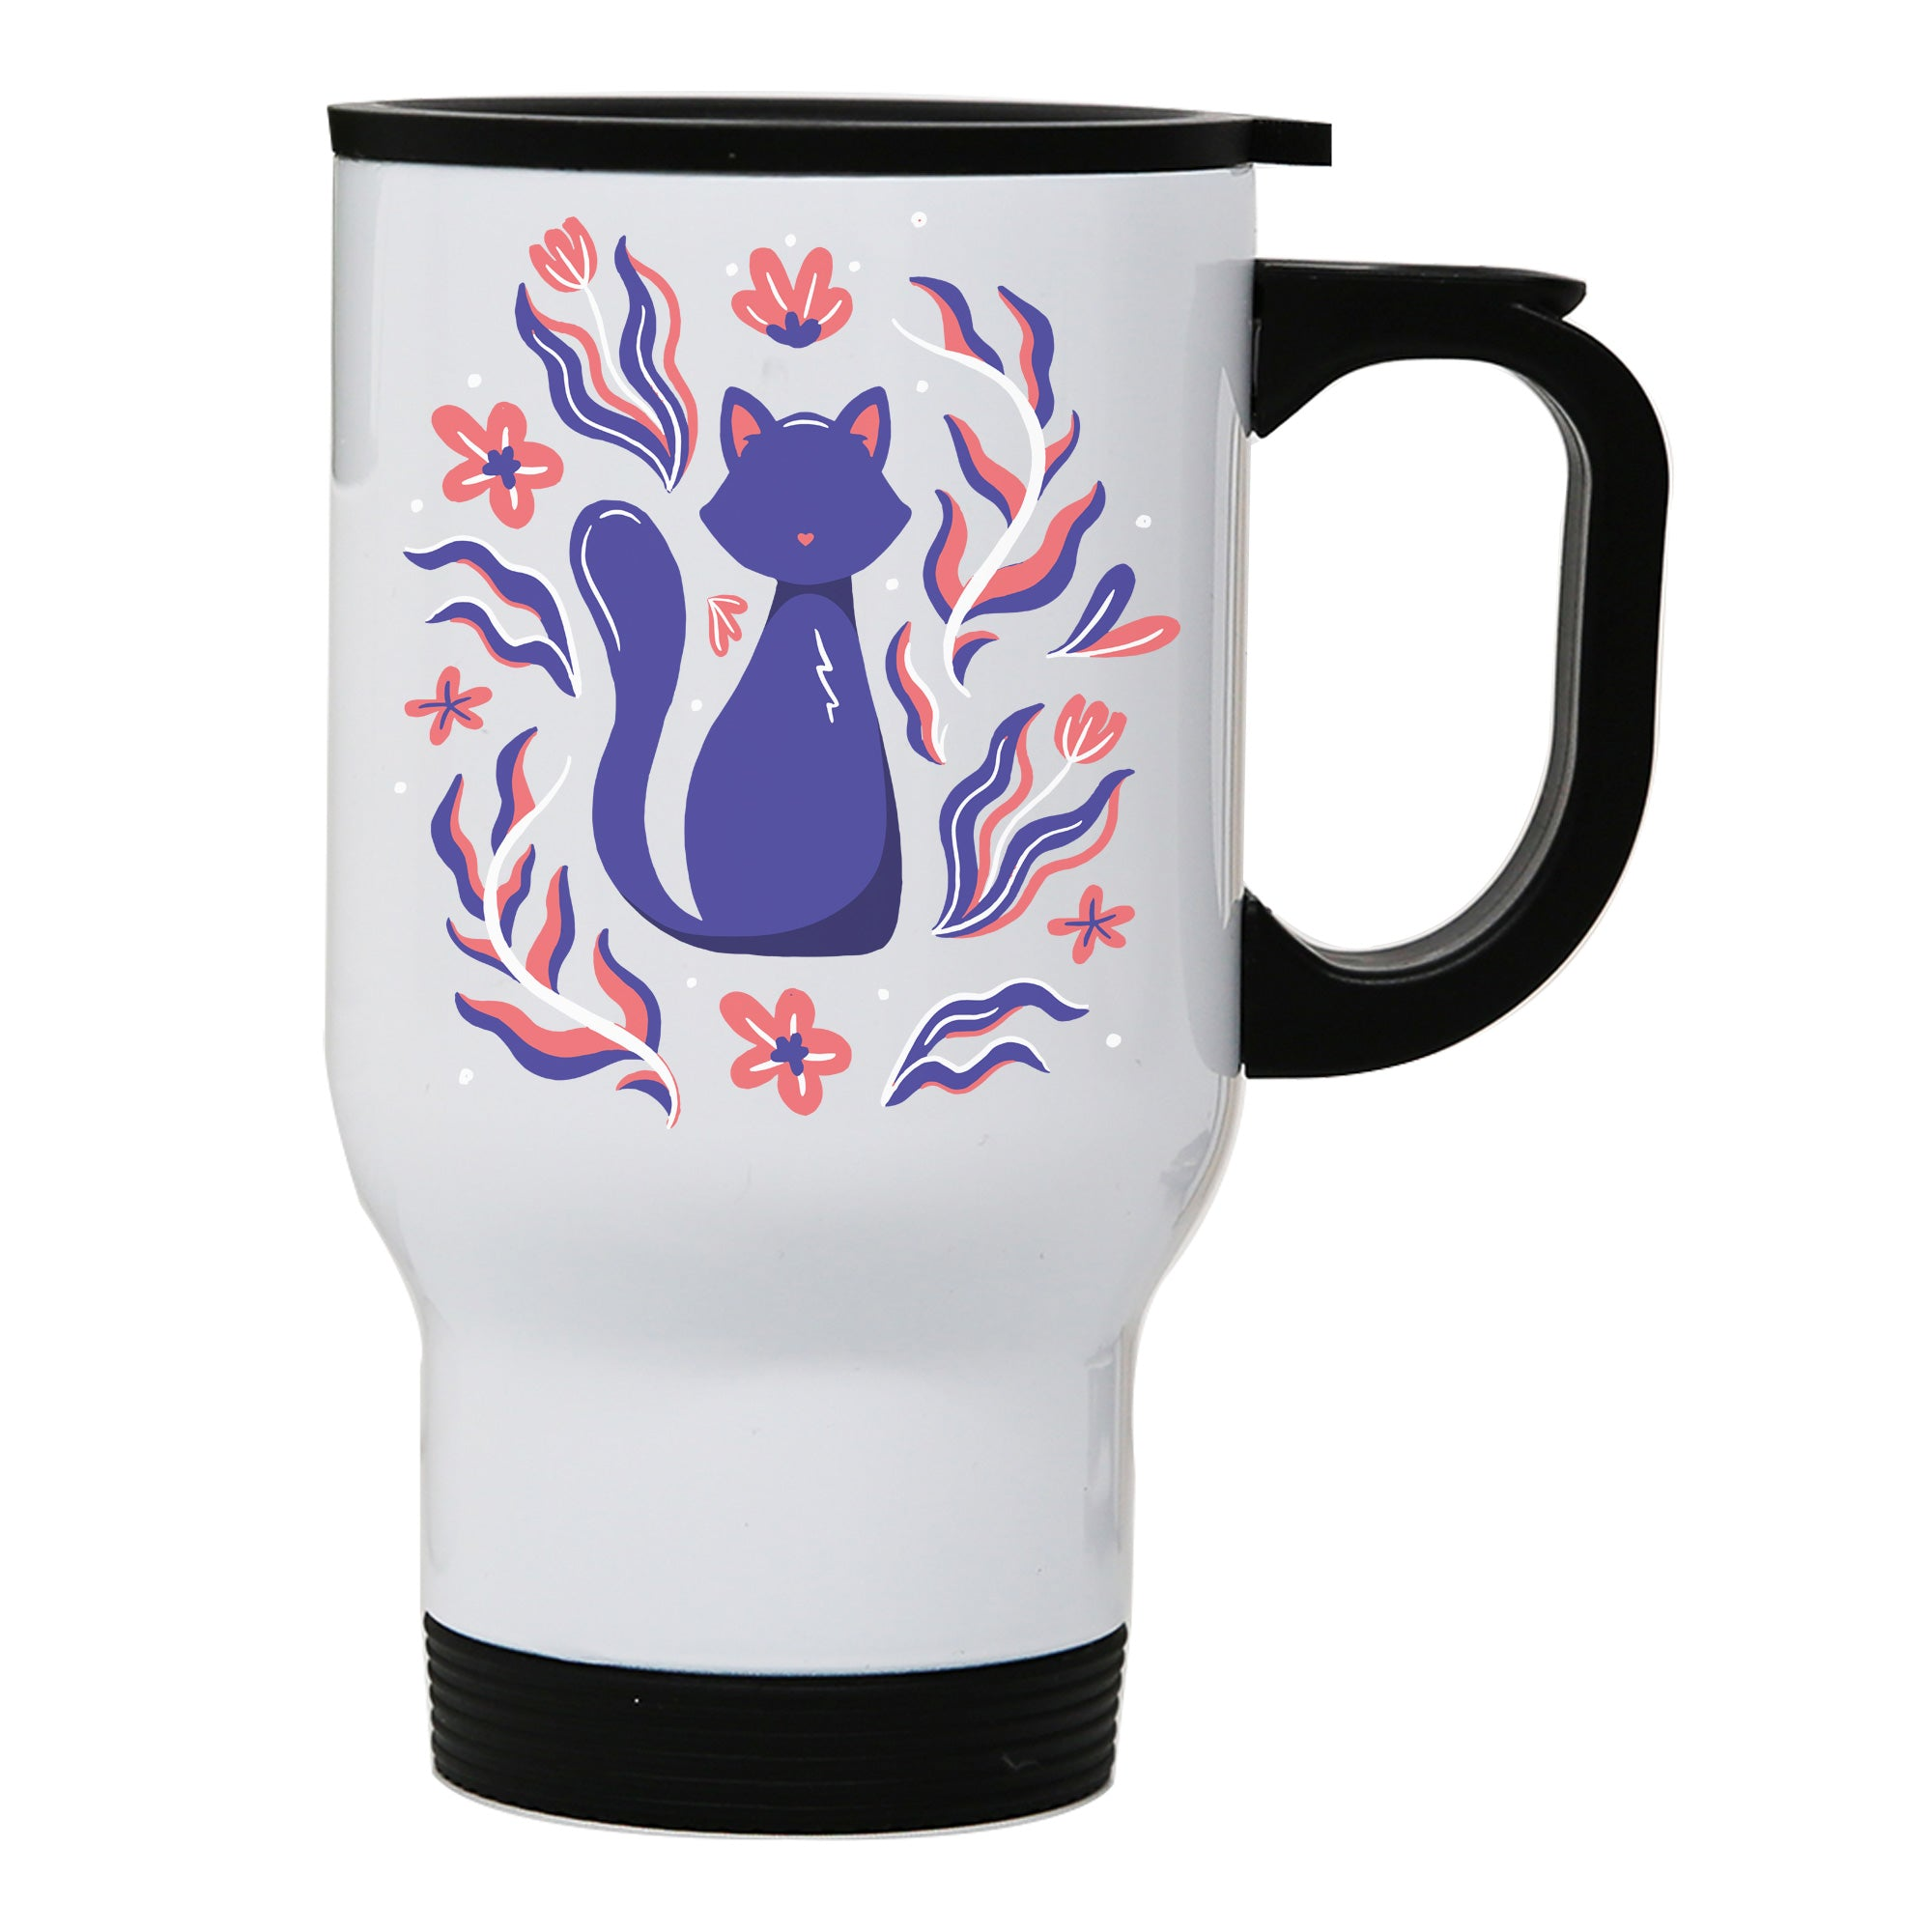 Nature cat illustration travel mug